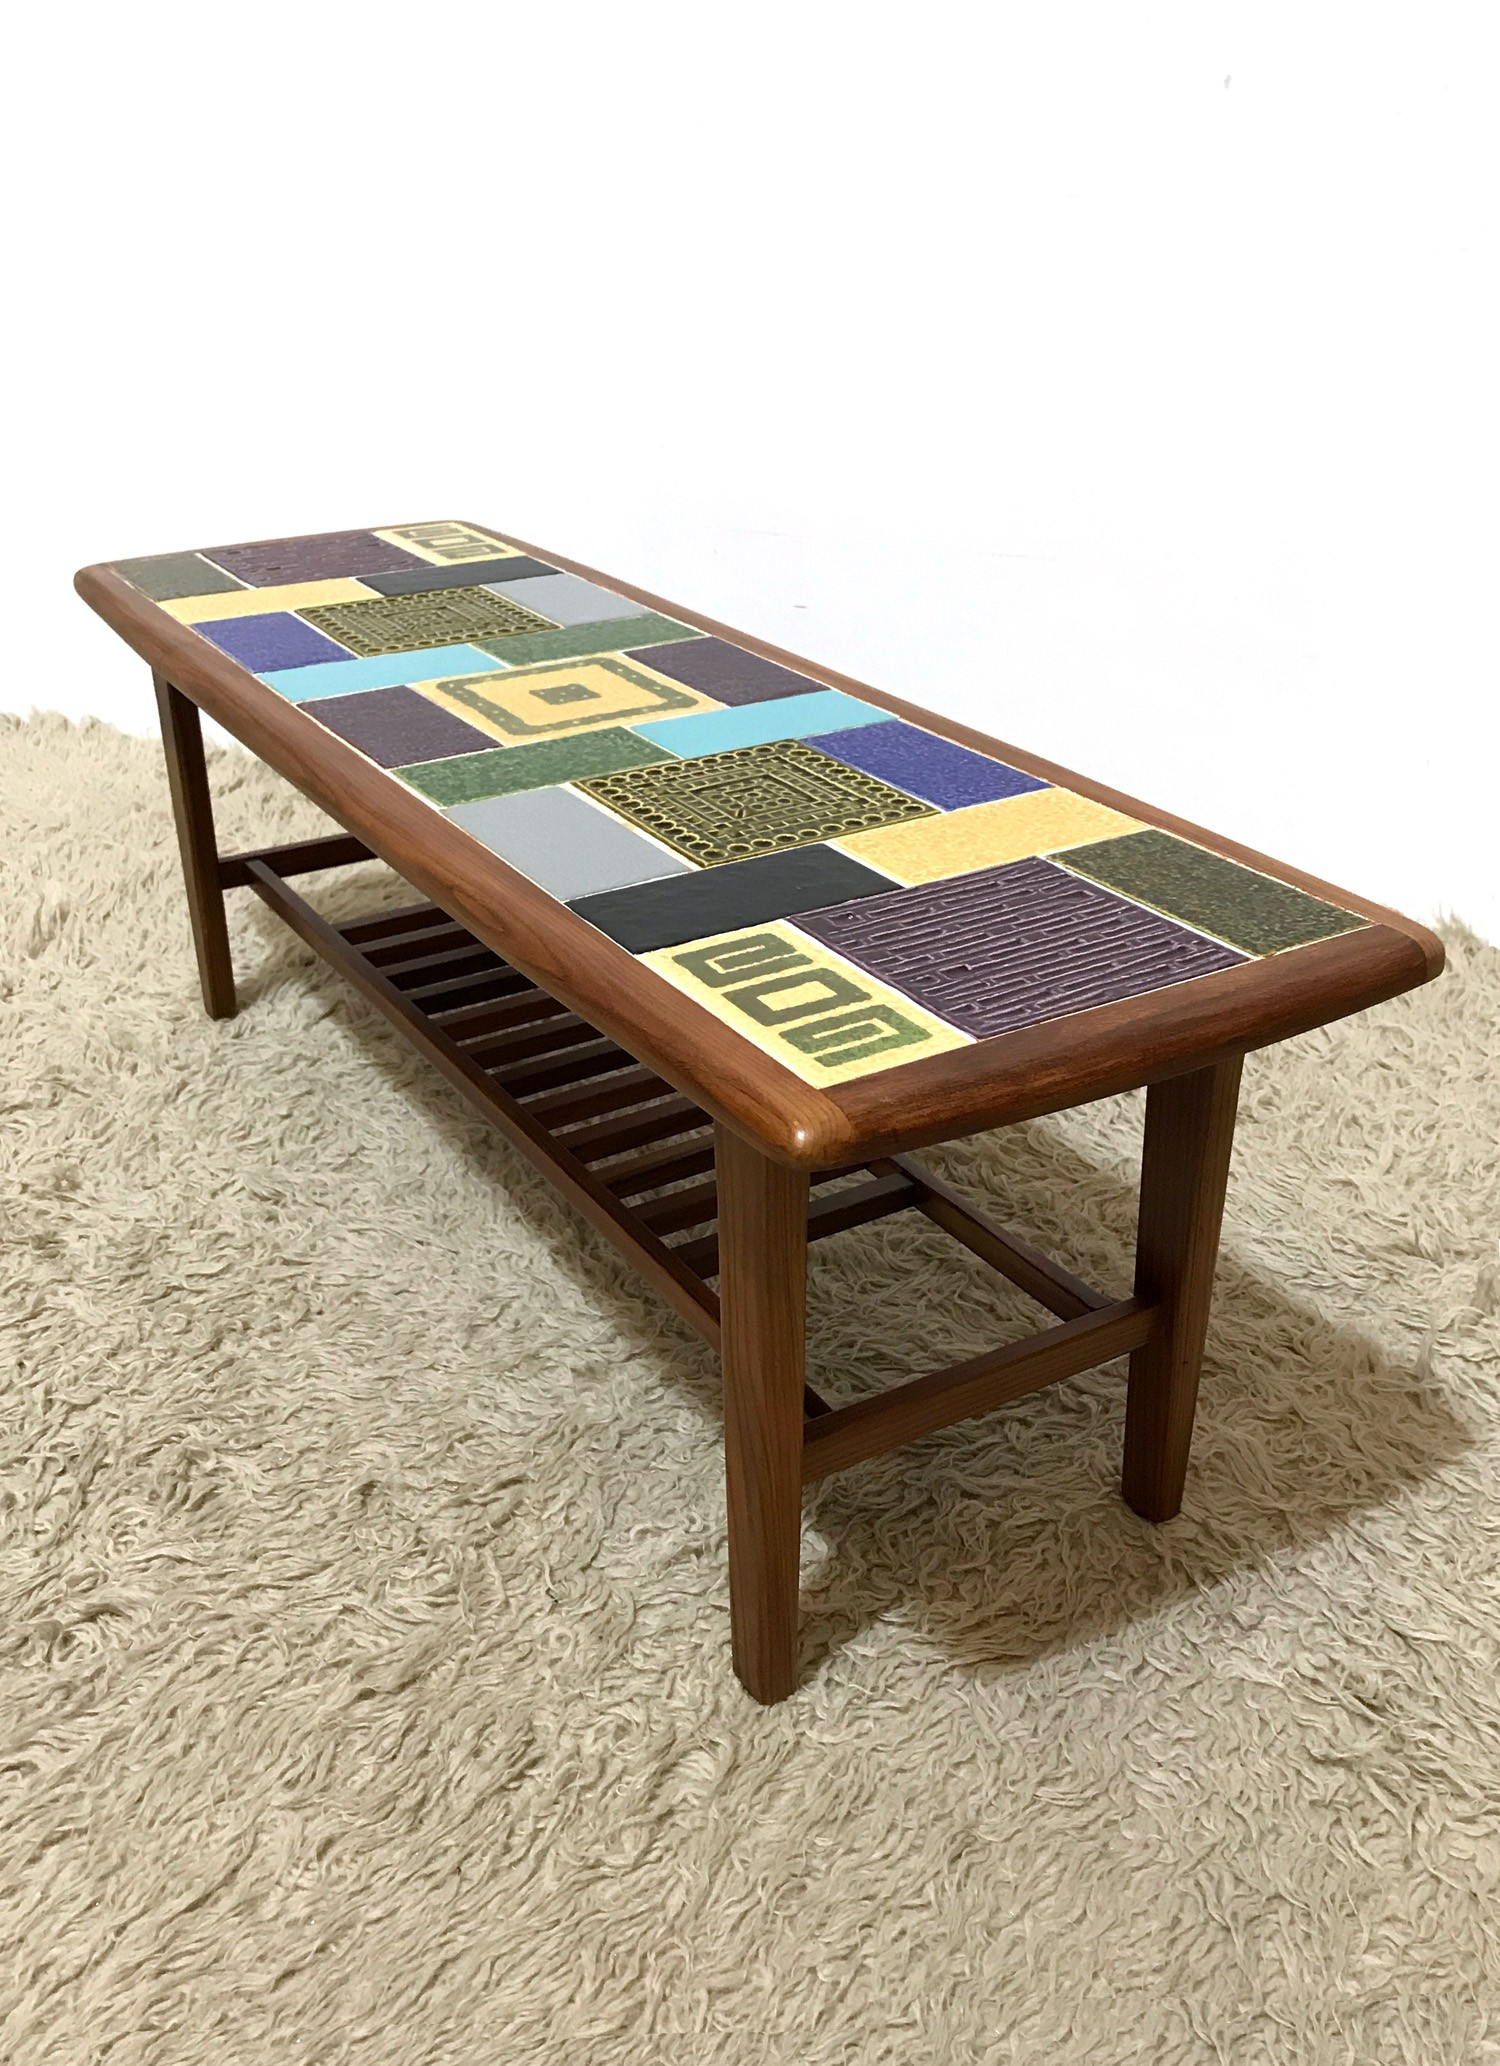 Mid century ceramic tiles coffee table by Malkin Johnson 1960s